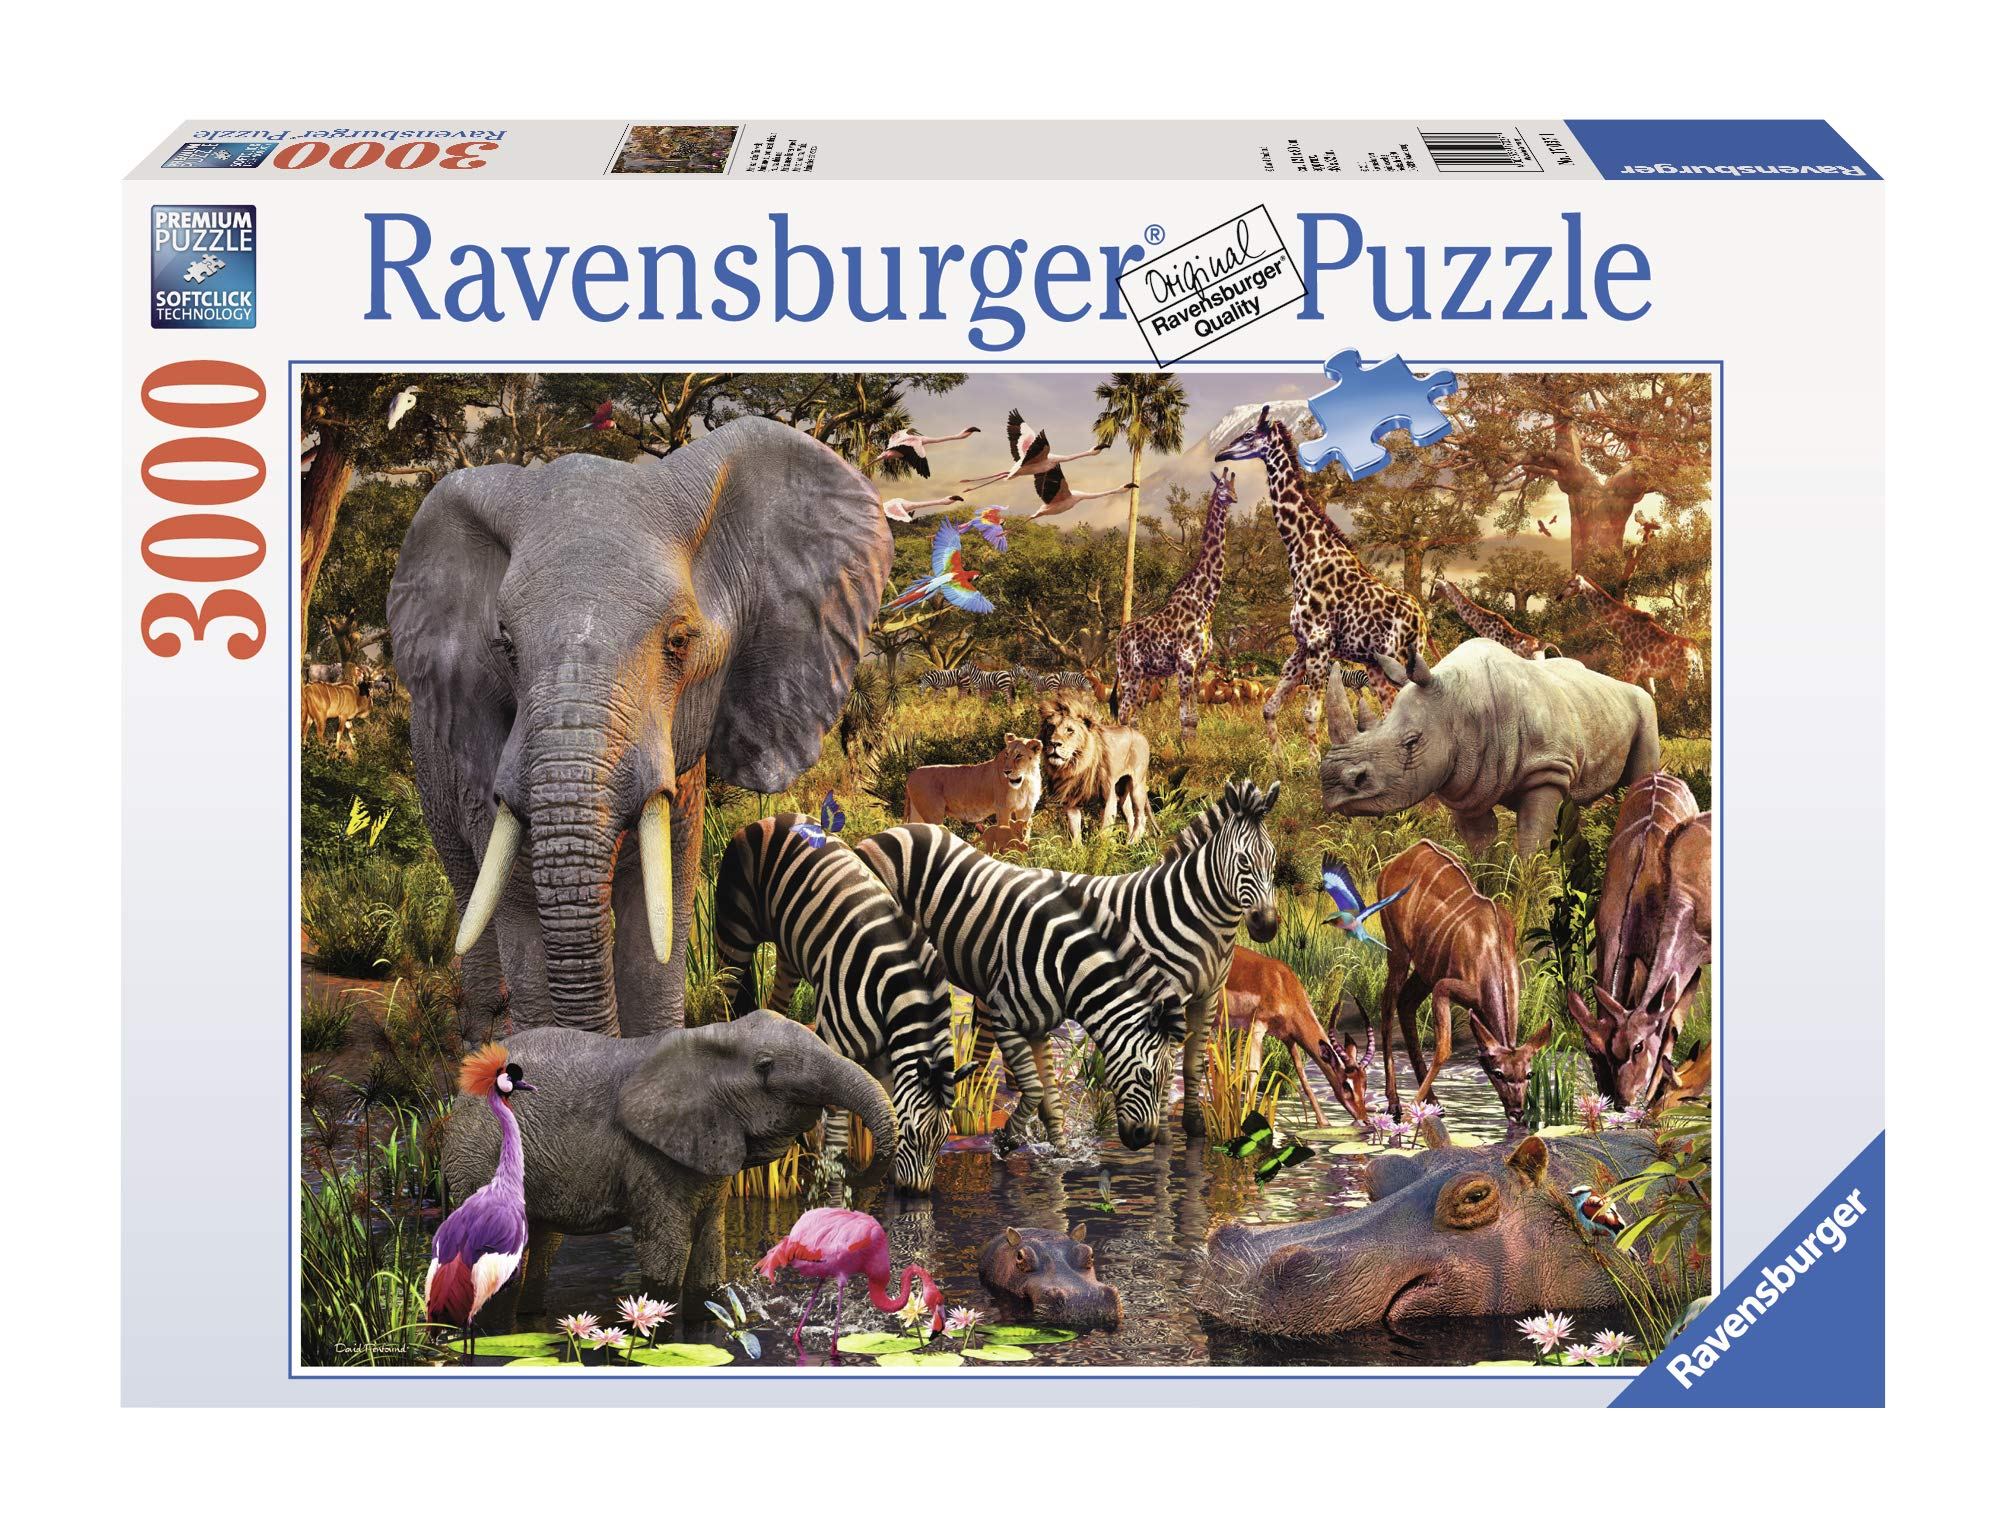 Ravensburger African Animals 3000 Piece Jigsaw Puzzle for Adults - Softclick Technology Means Pieces Fit Together Perfectly by Ravensburger